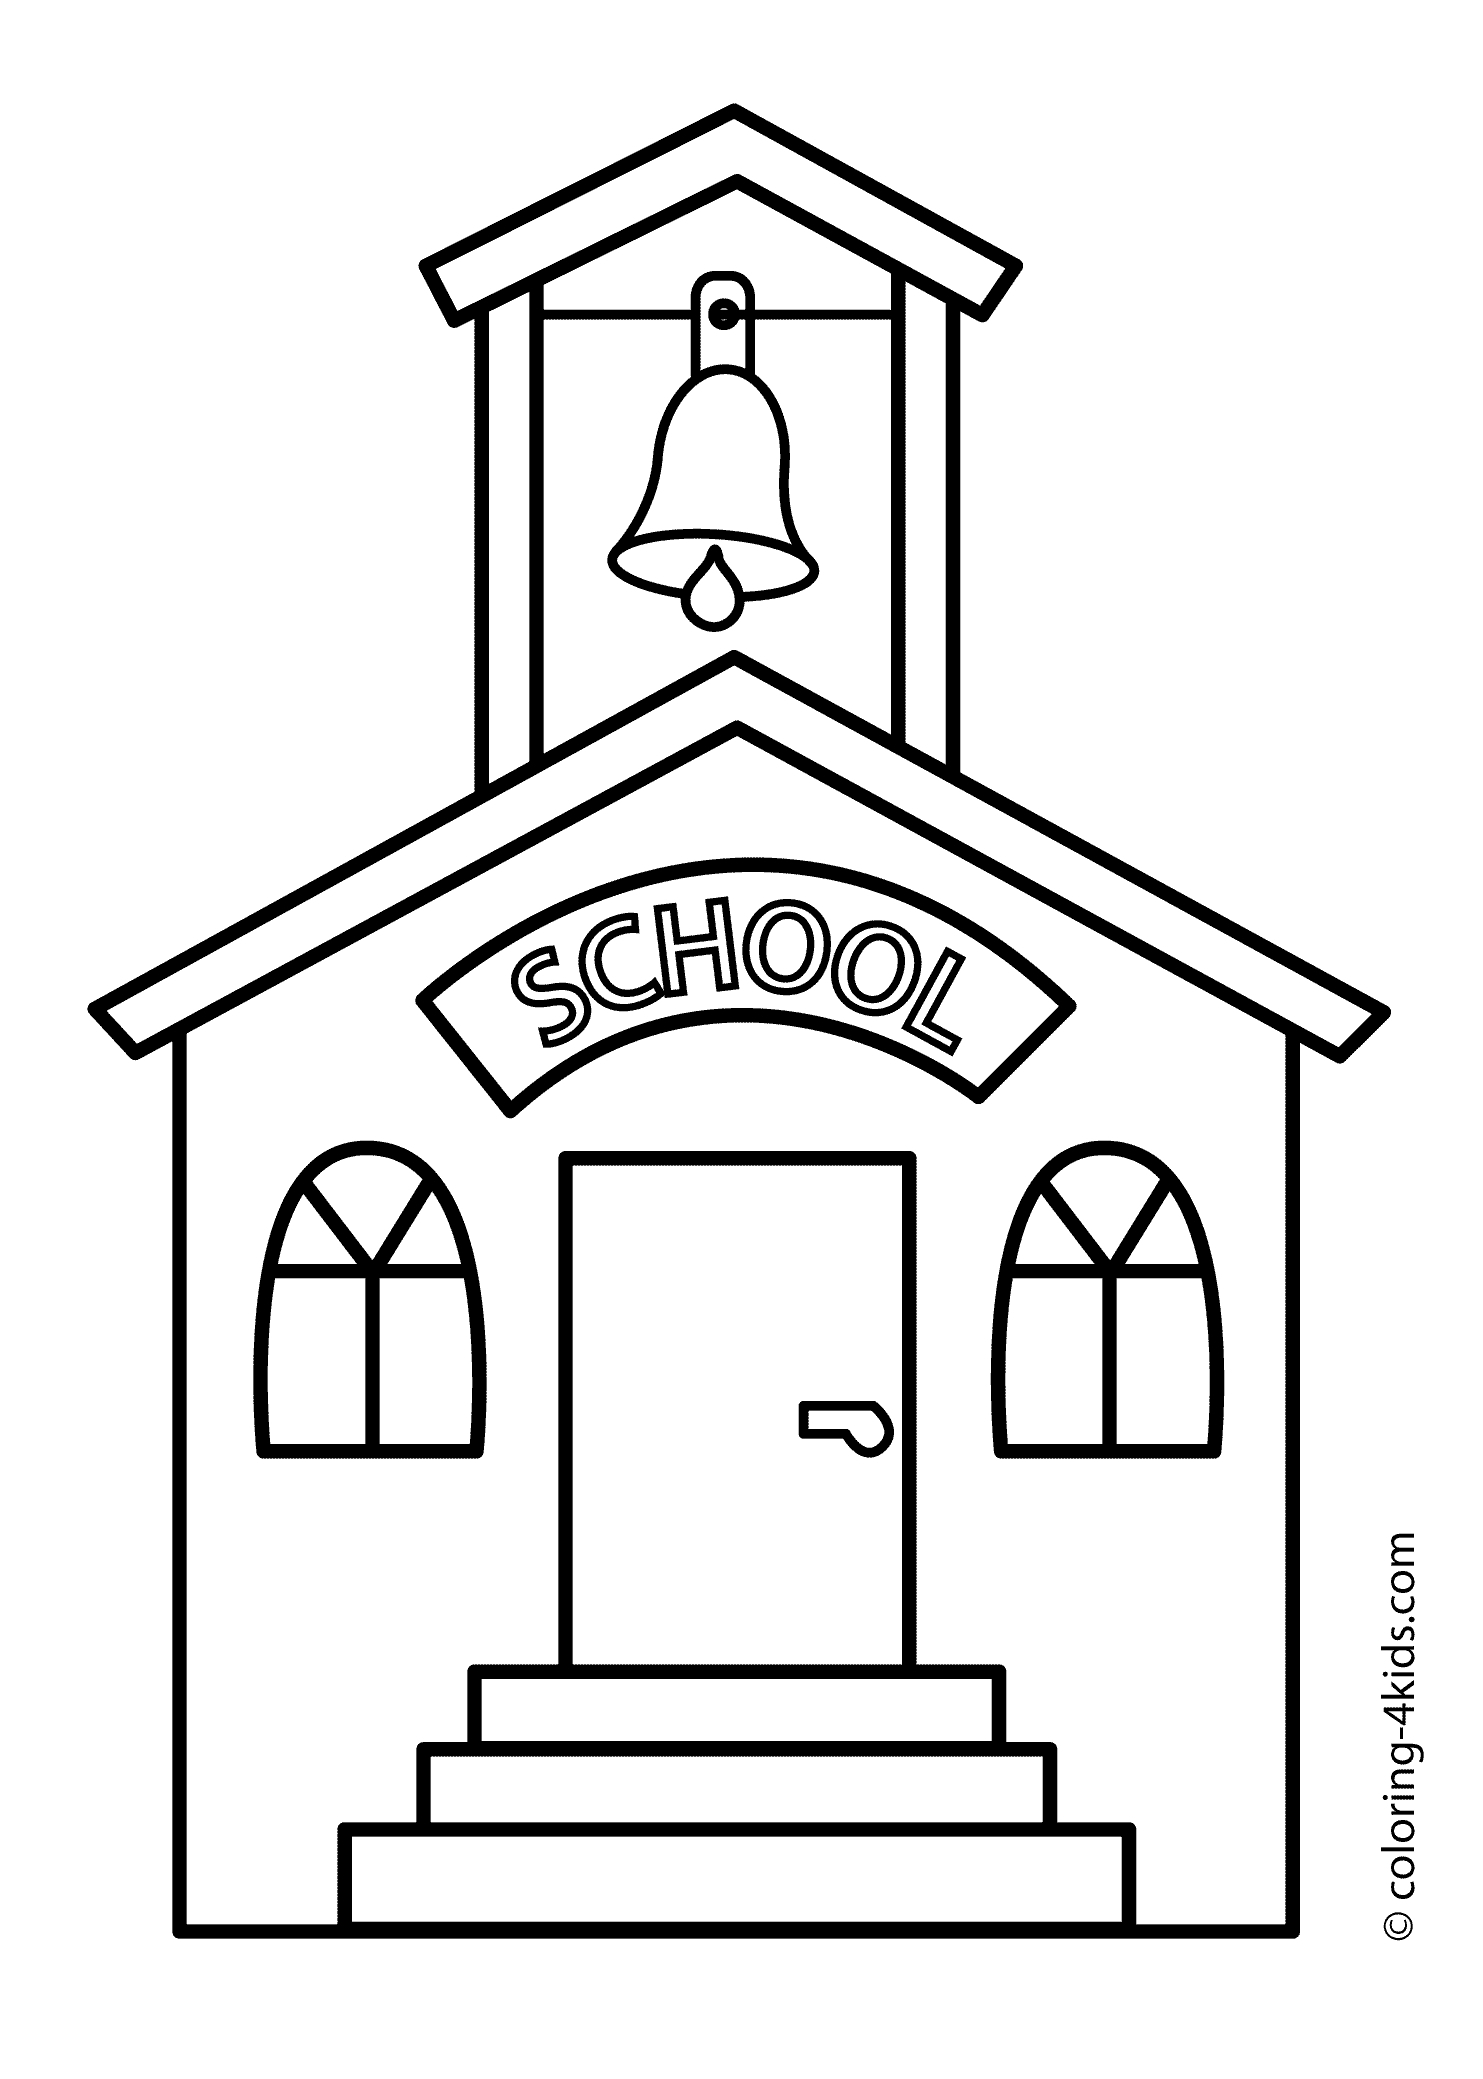 School House Coloring Page Download Of School House Coloring Pages to Print